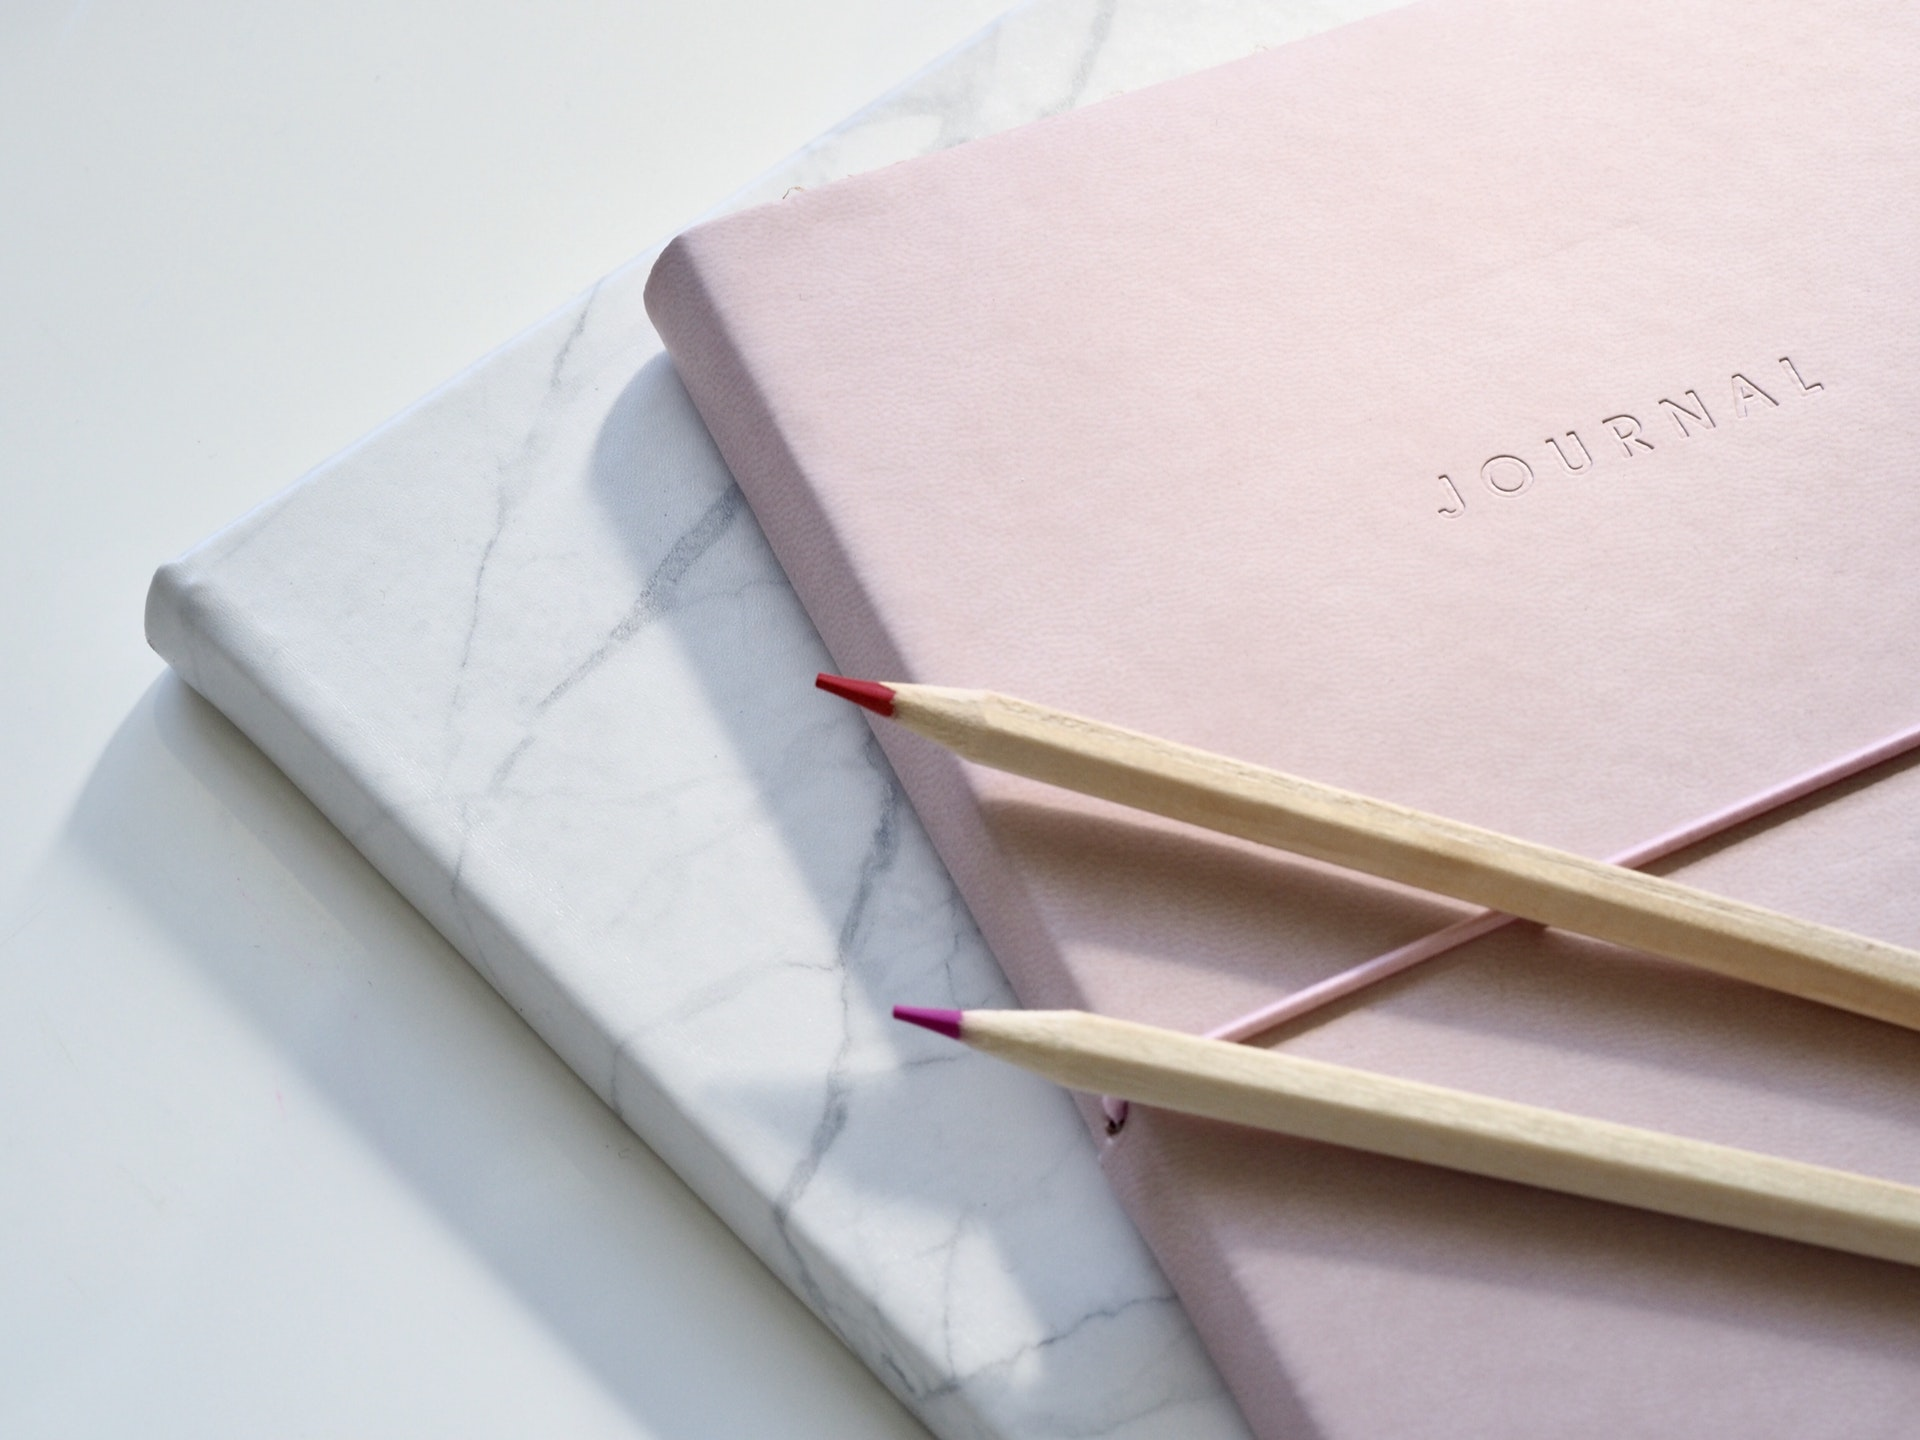 journal to get more clarity